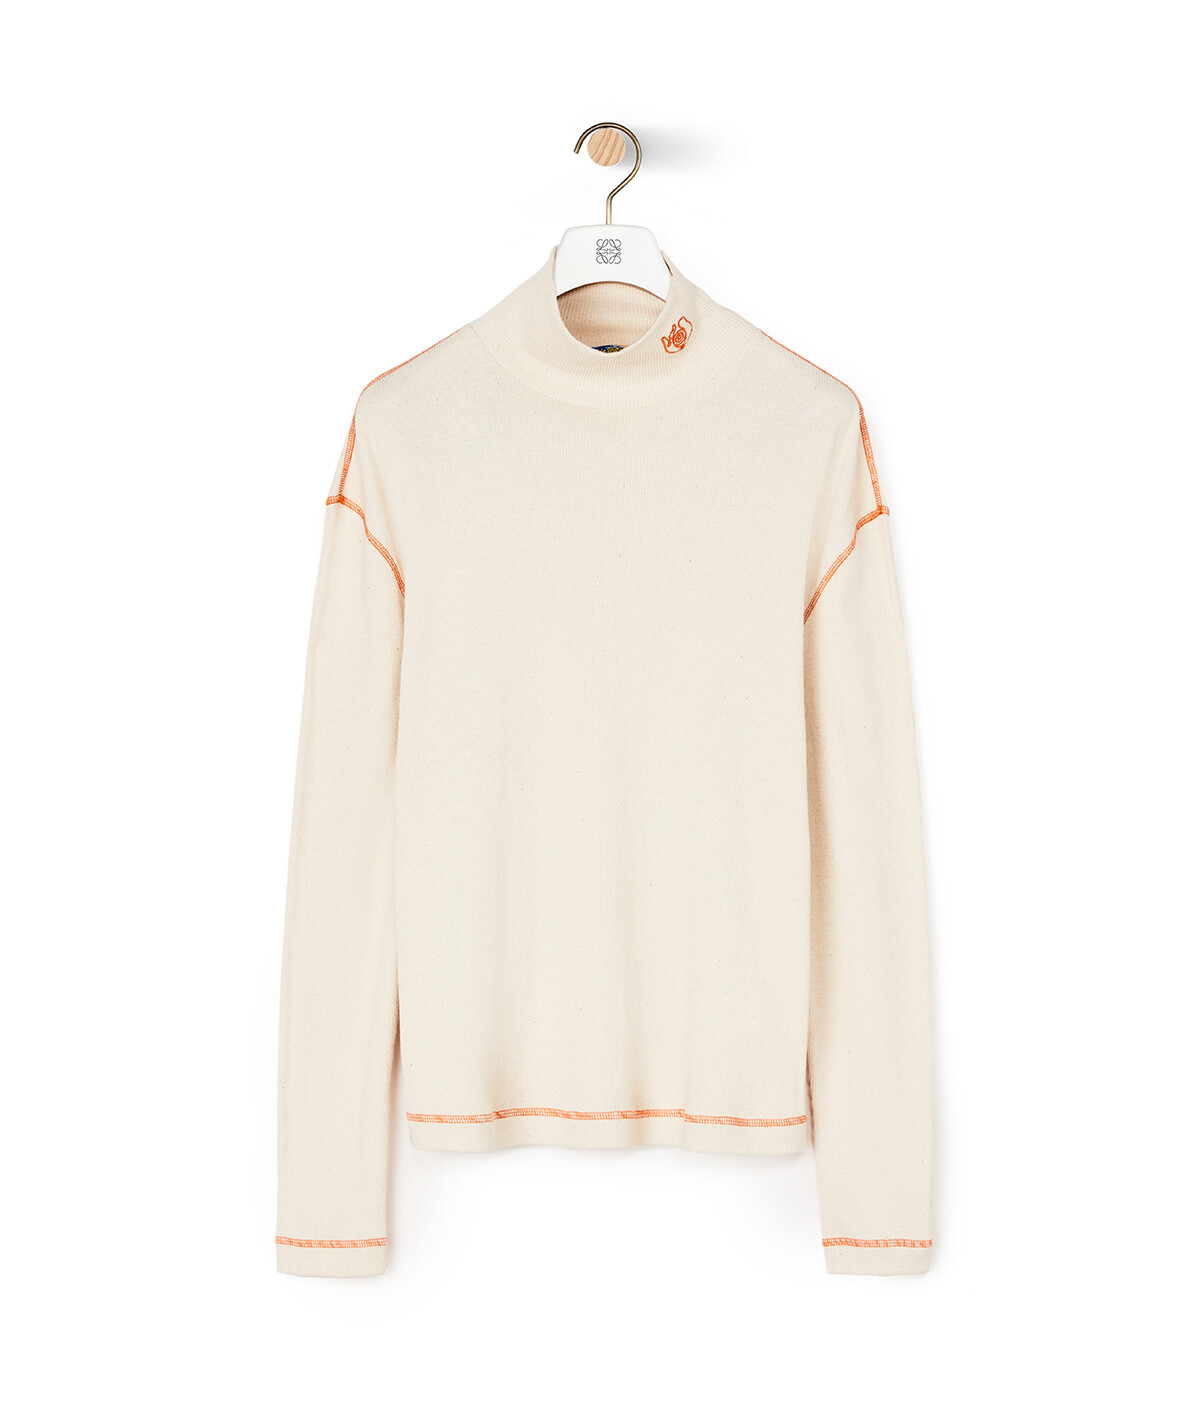 LOEWE Eln Roll Neck Long Slv T-Shirt Ecru front